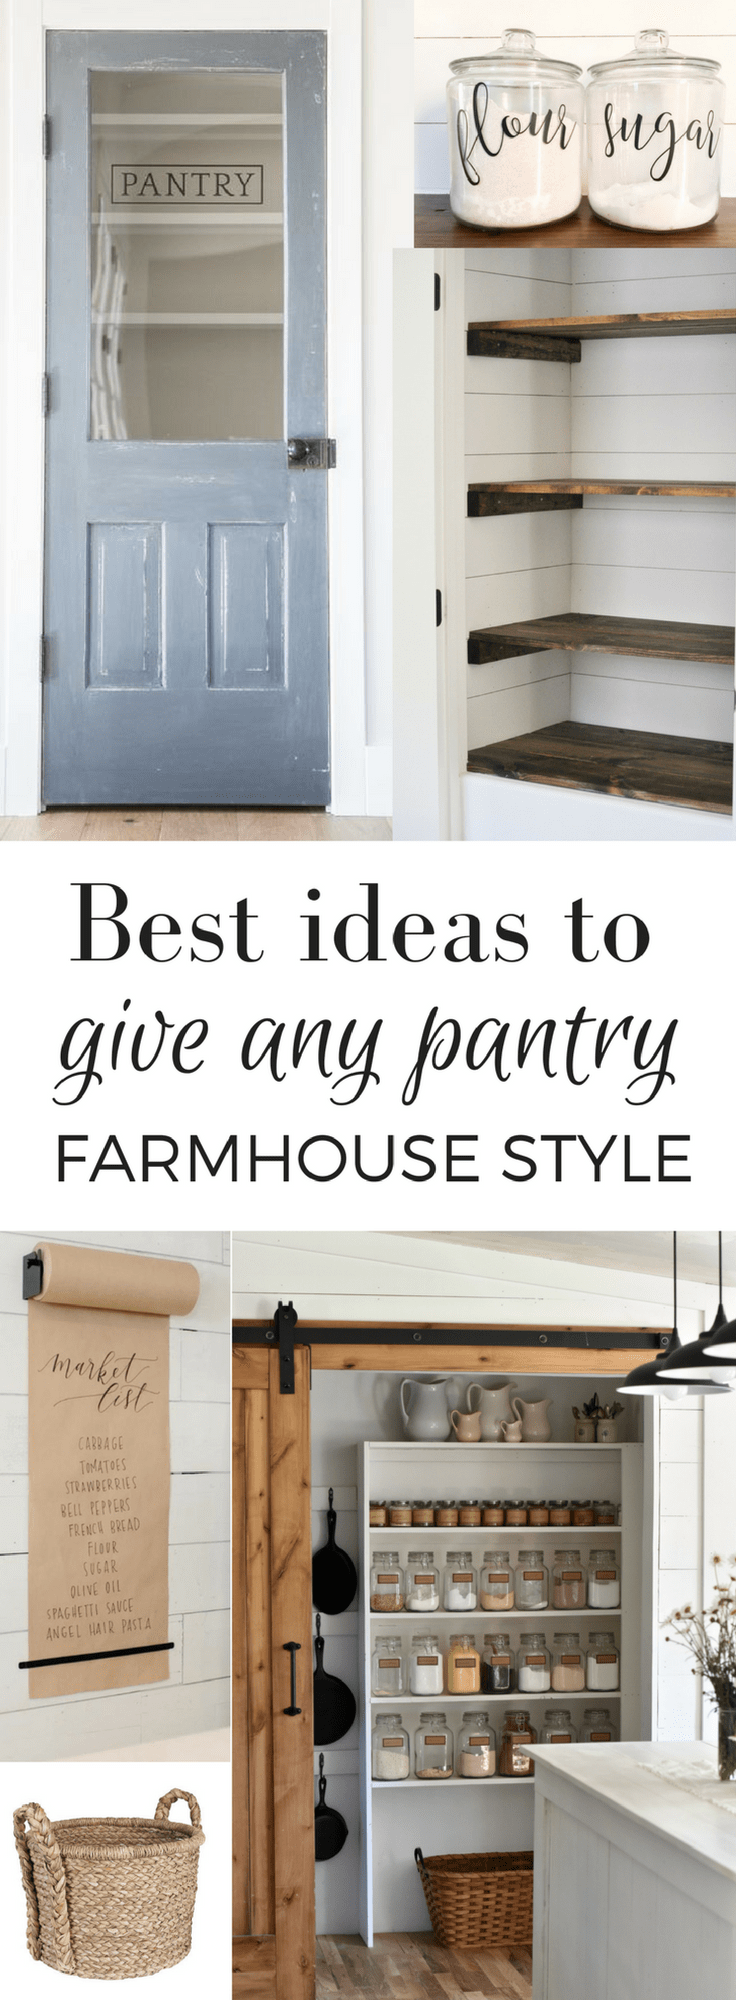 Best ideas to give any pantry farmhouse style farmhouse style